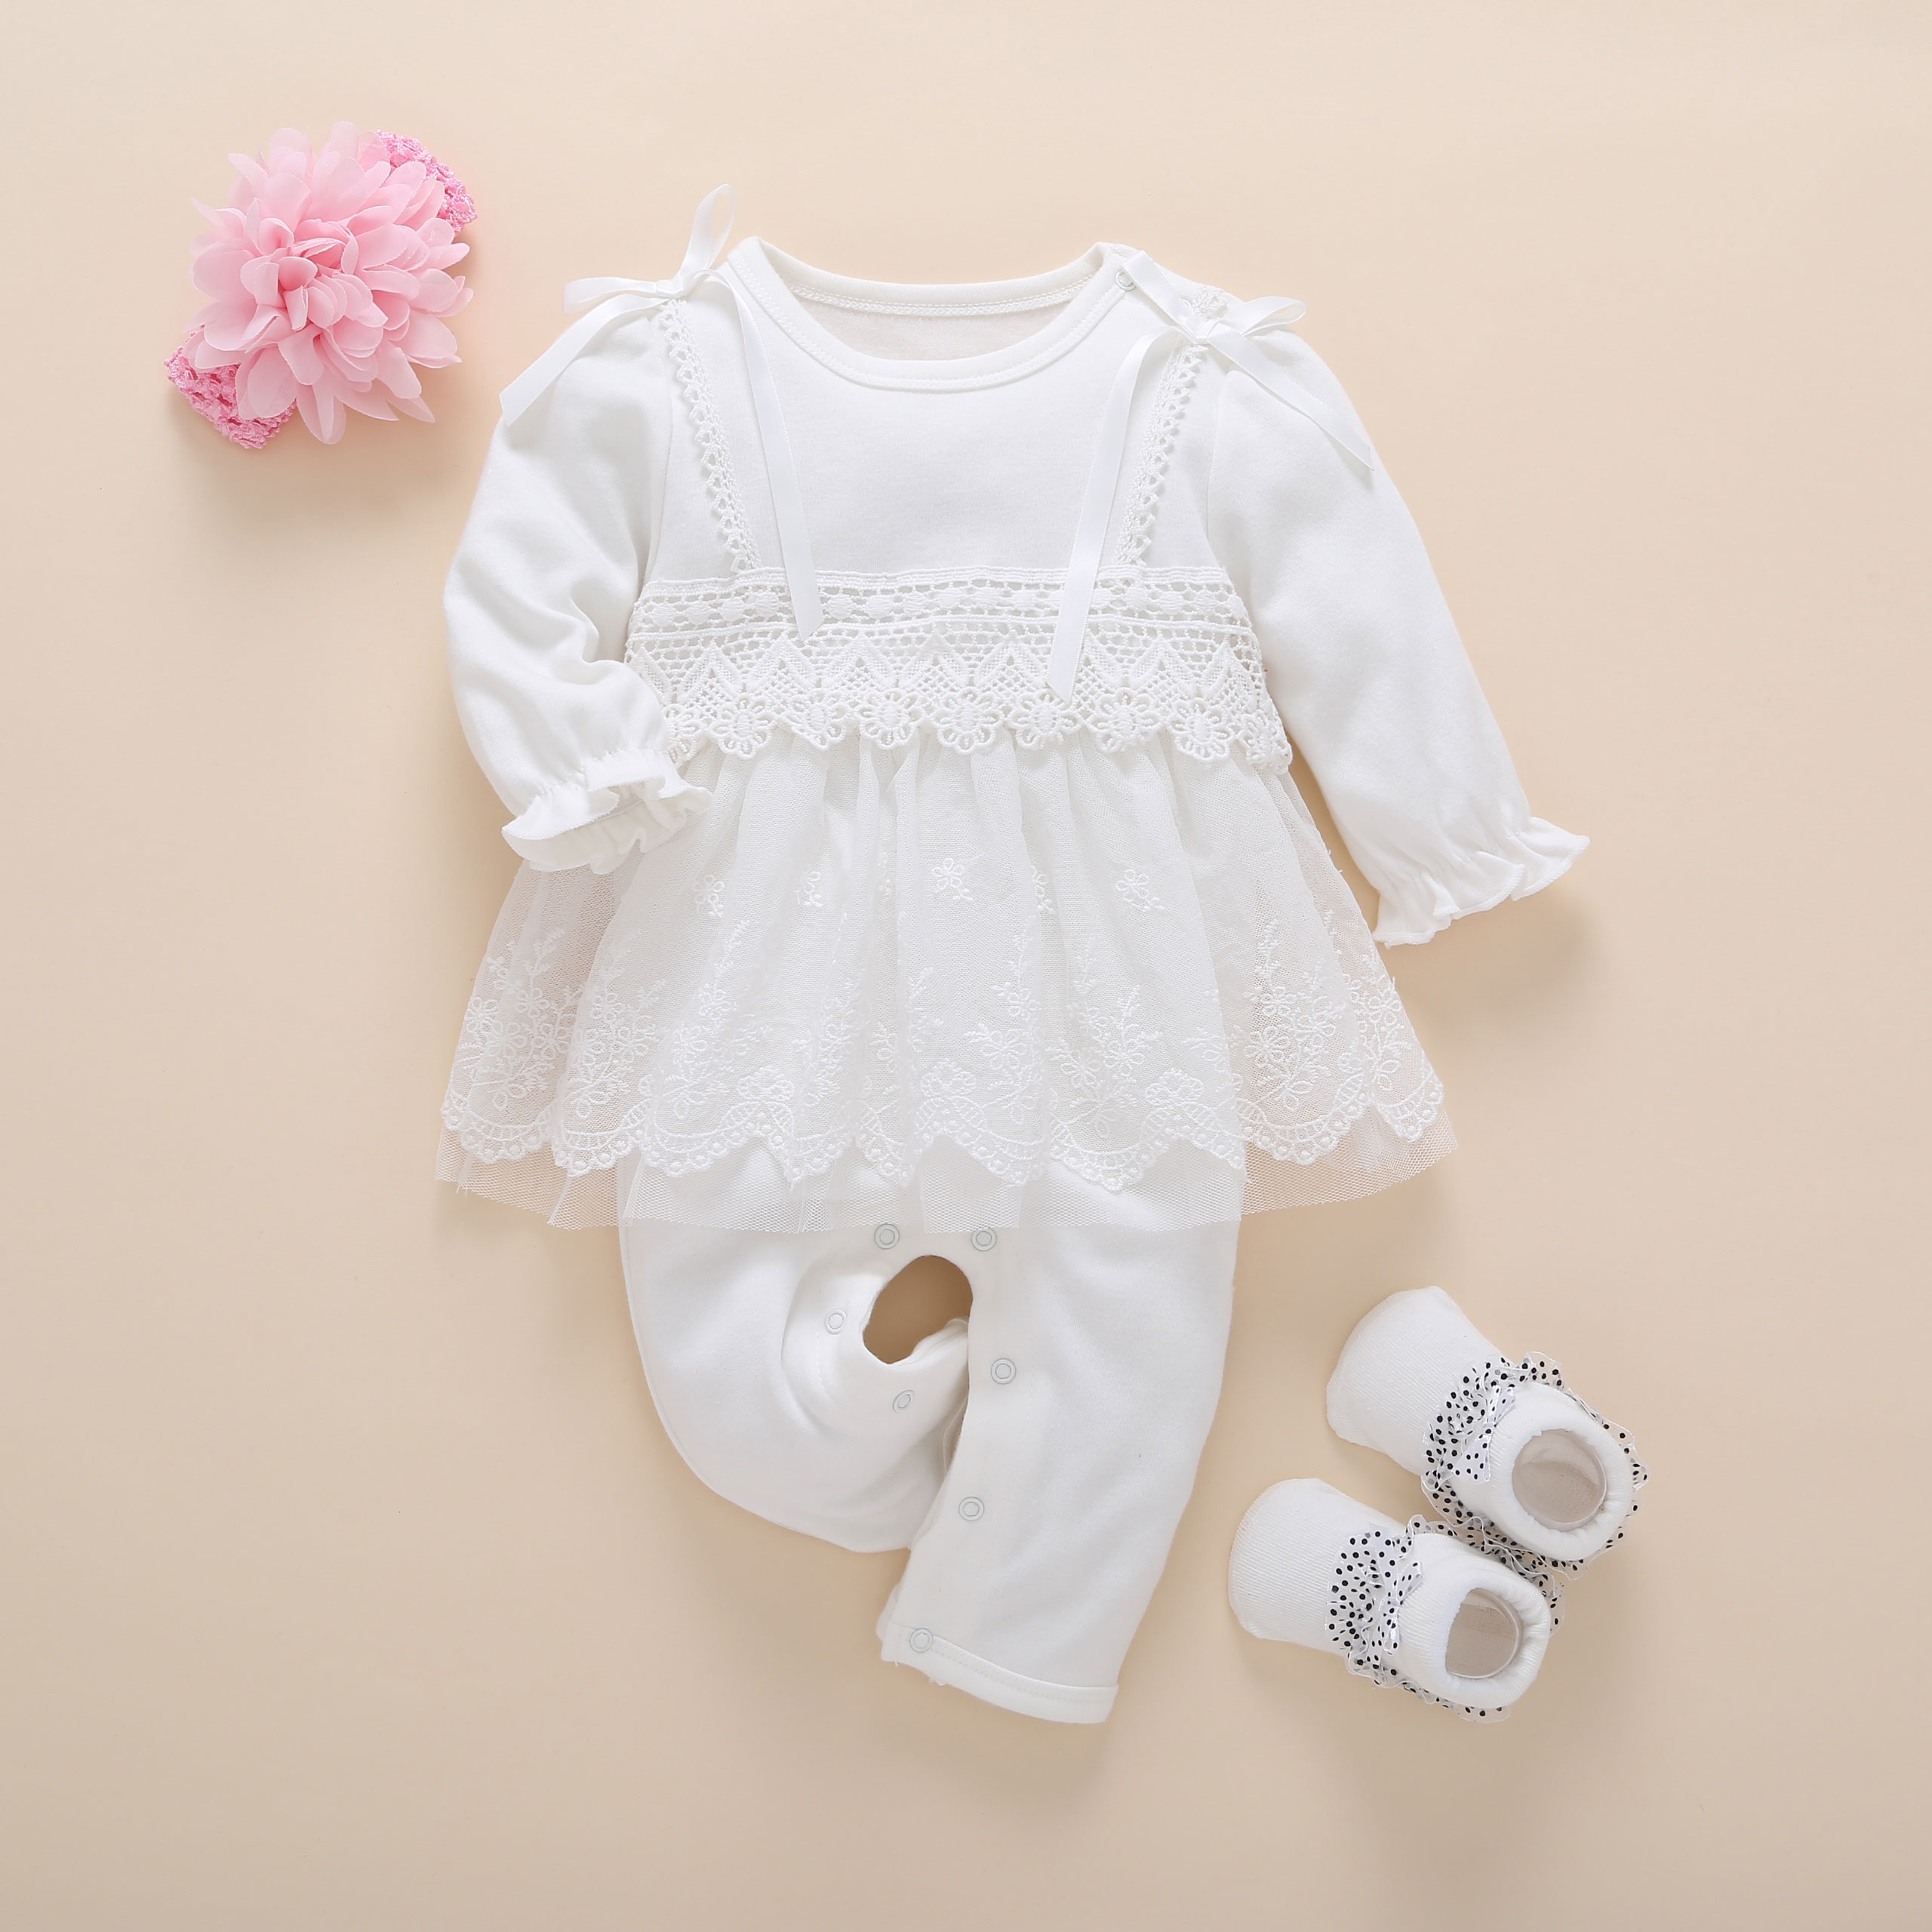 new born baby clothes long sleeved princess baby girl romper autumn spring lace children jumpsuit headband